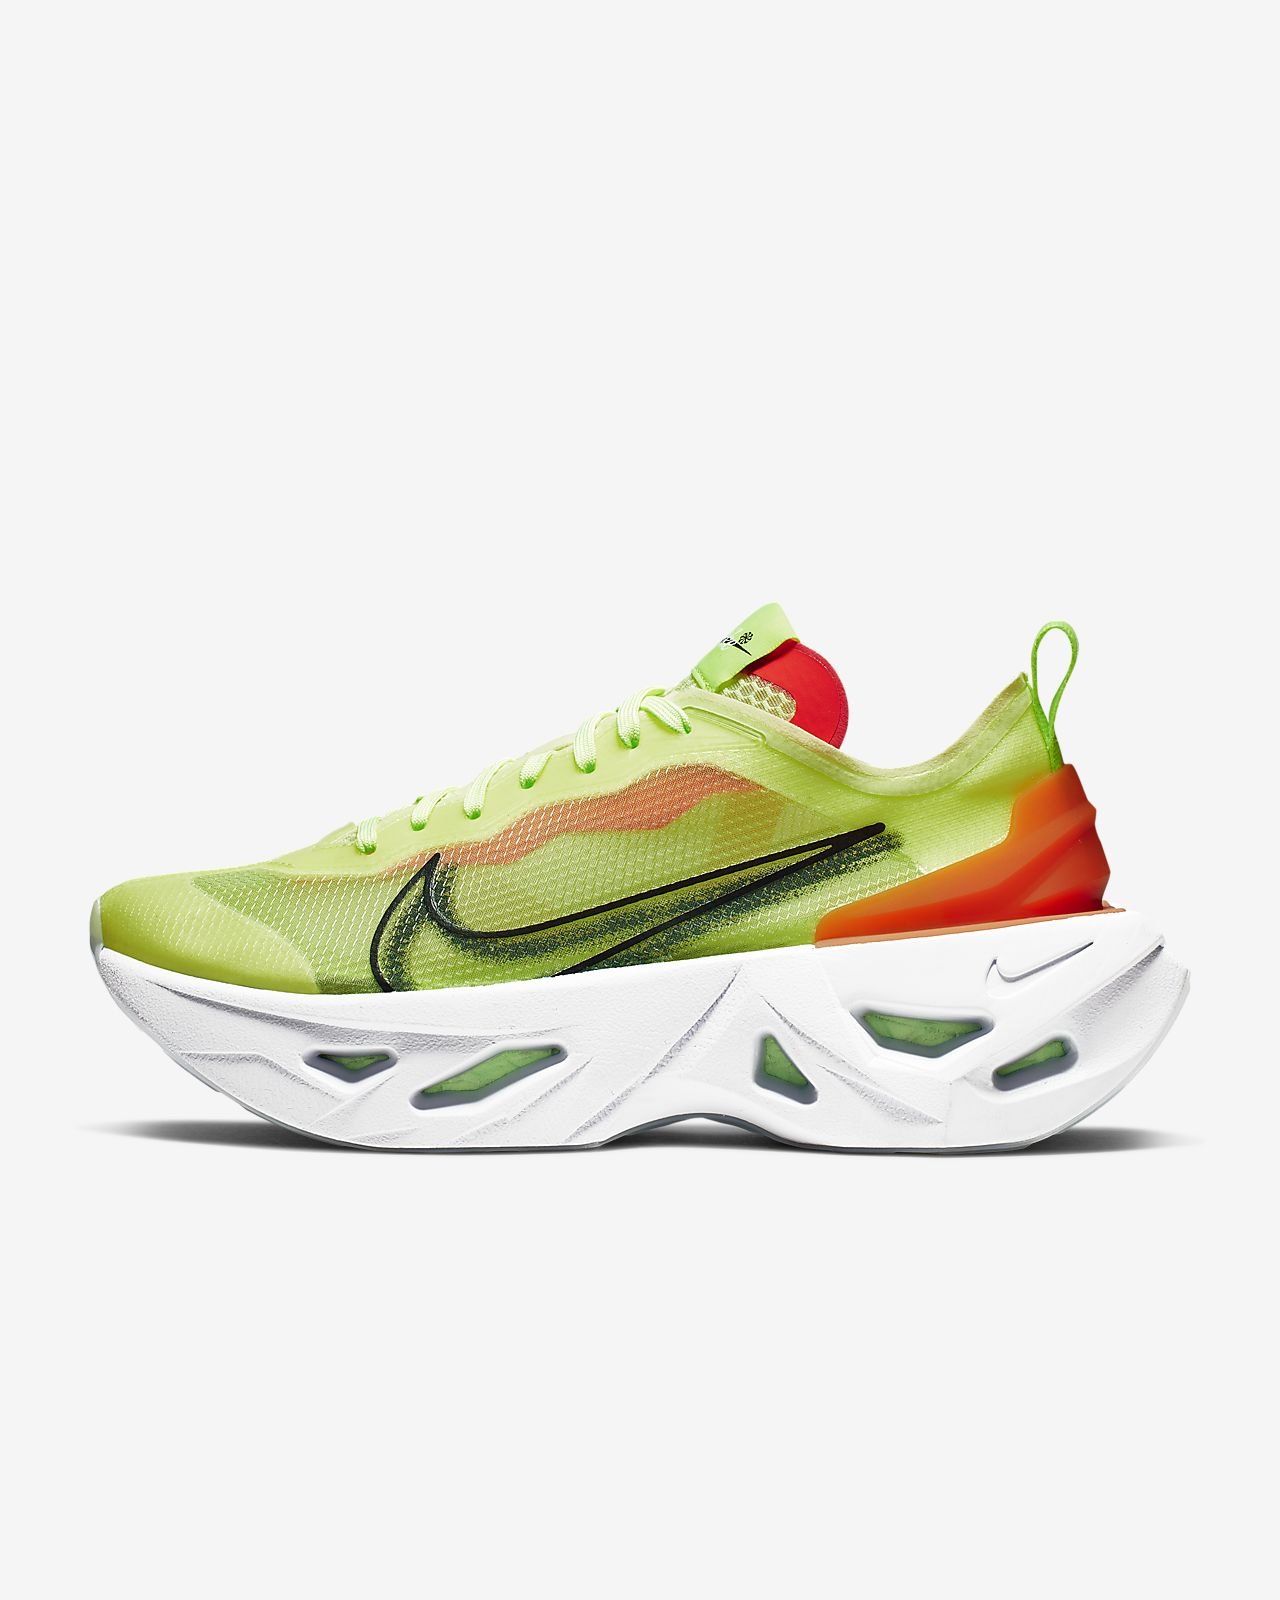 Chaussure Nike Zoom X Vista Grind pour Femme